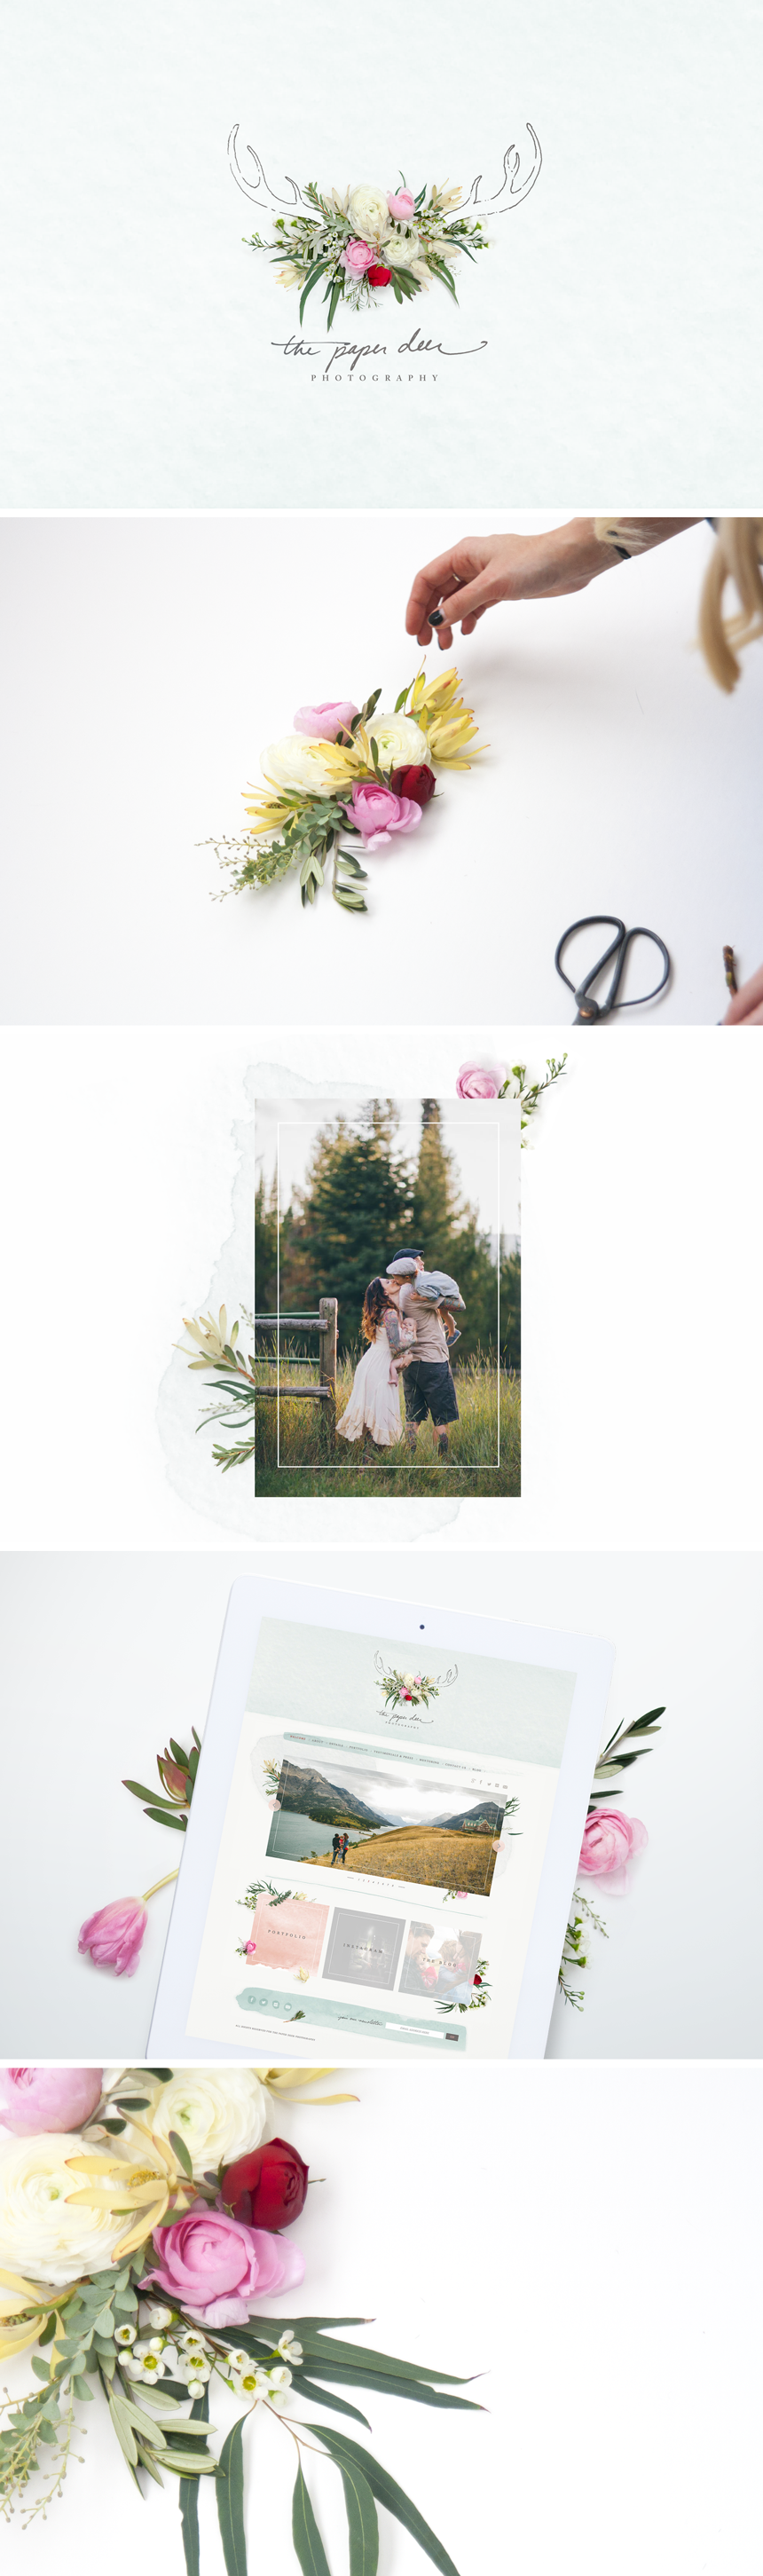 The Paper Deer Photography - One Plus One Design